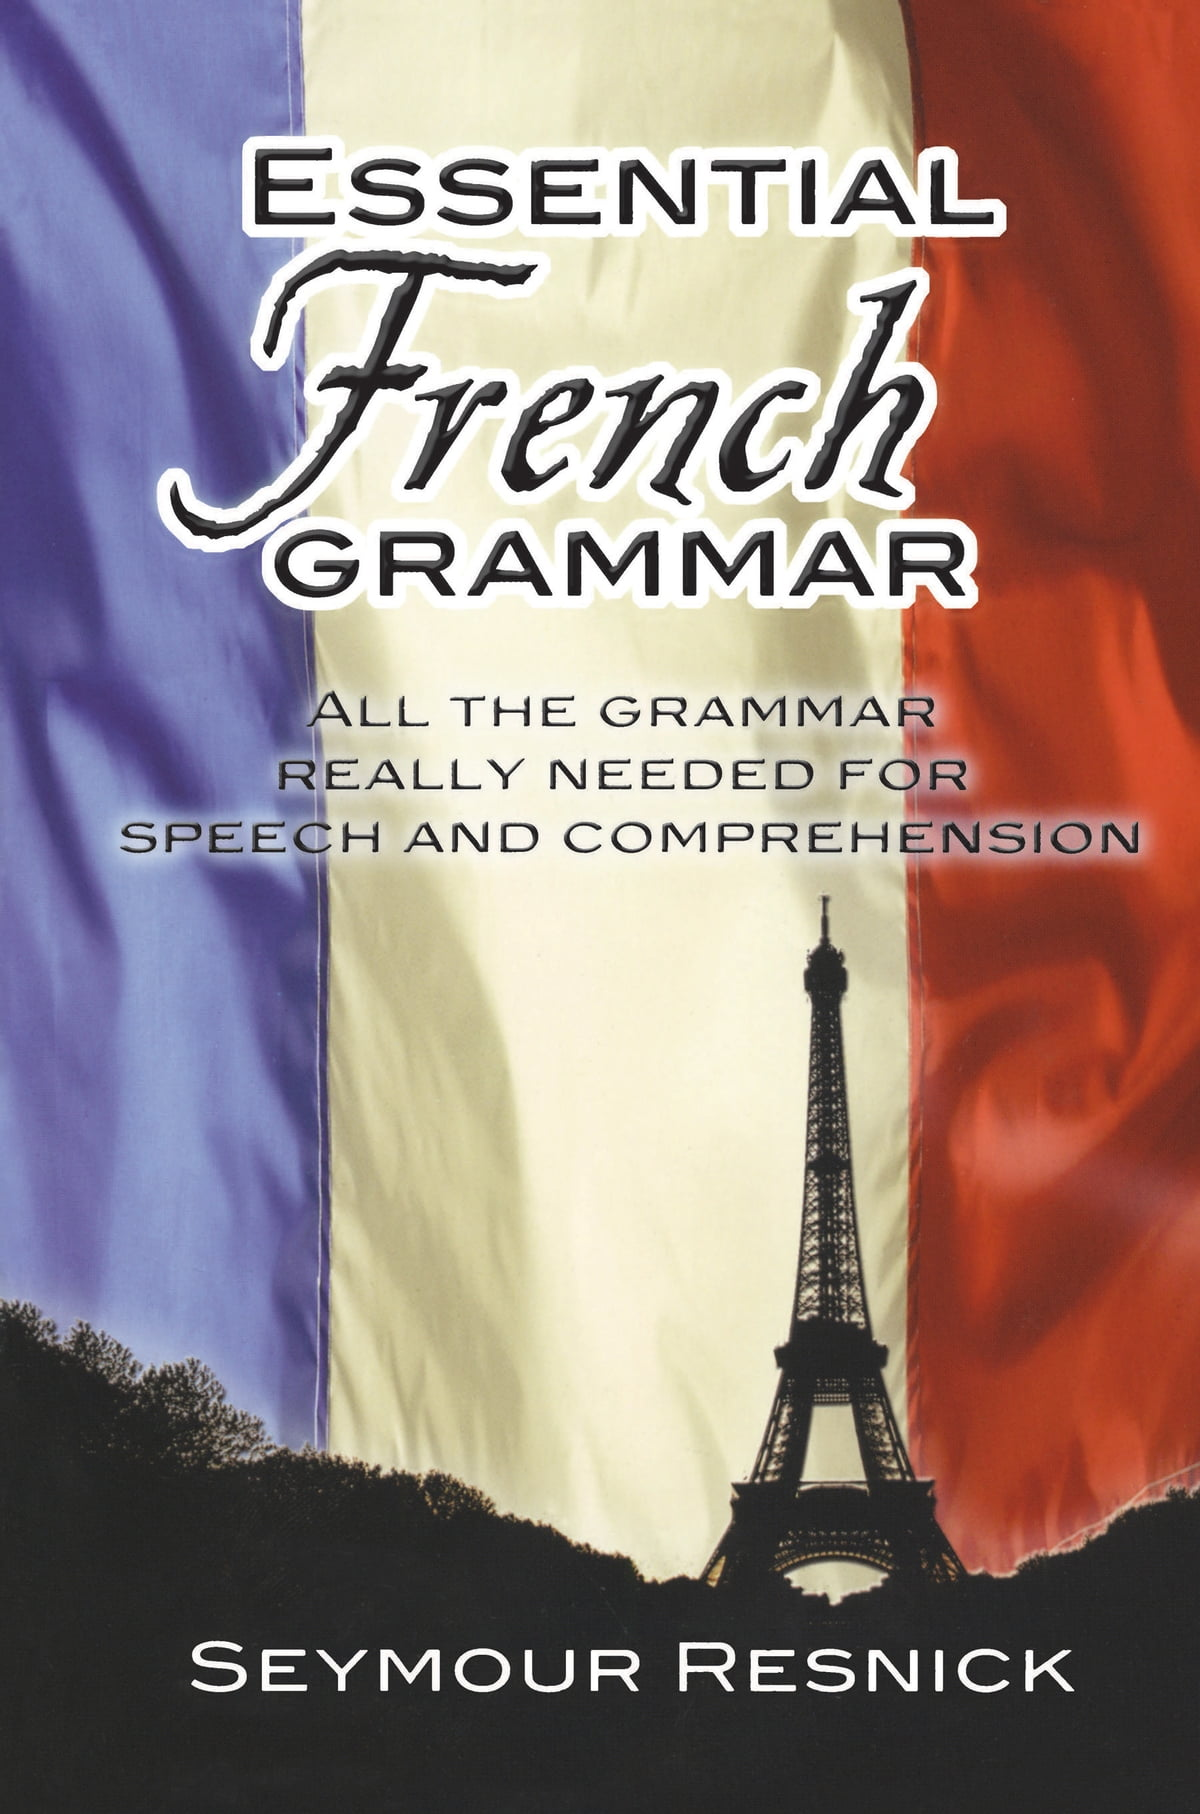 Essential French Grammar eBook by Seymour Resnick - 9780486113418 | Rakuten  Kobo